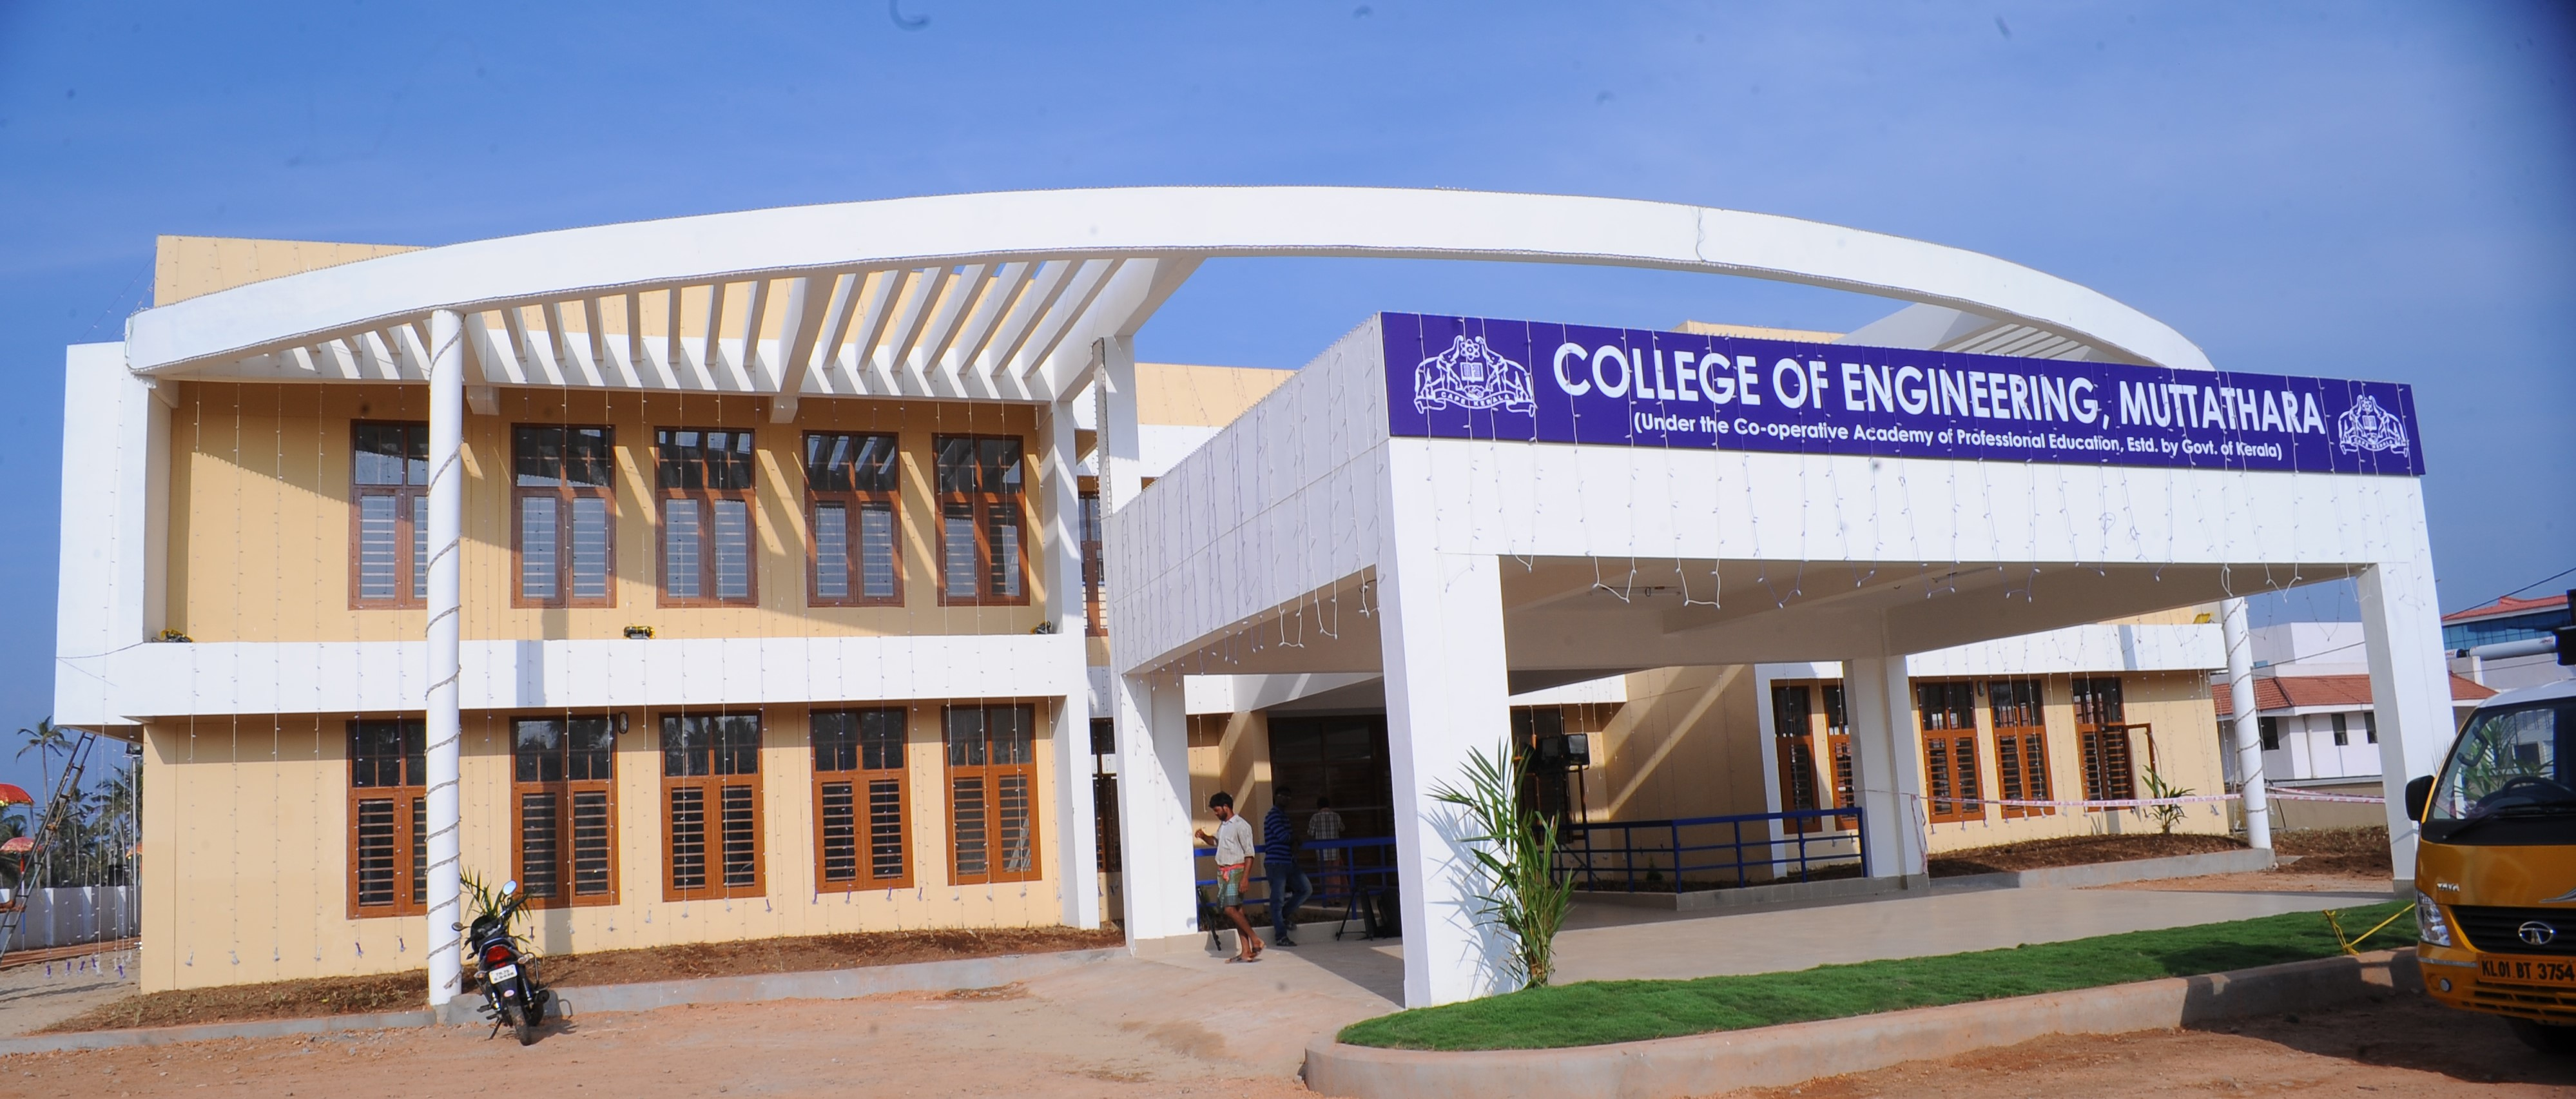 cape engg college.jpg